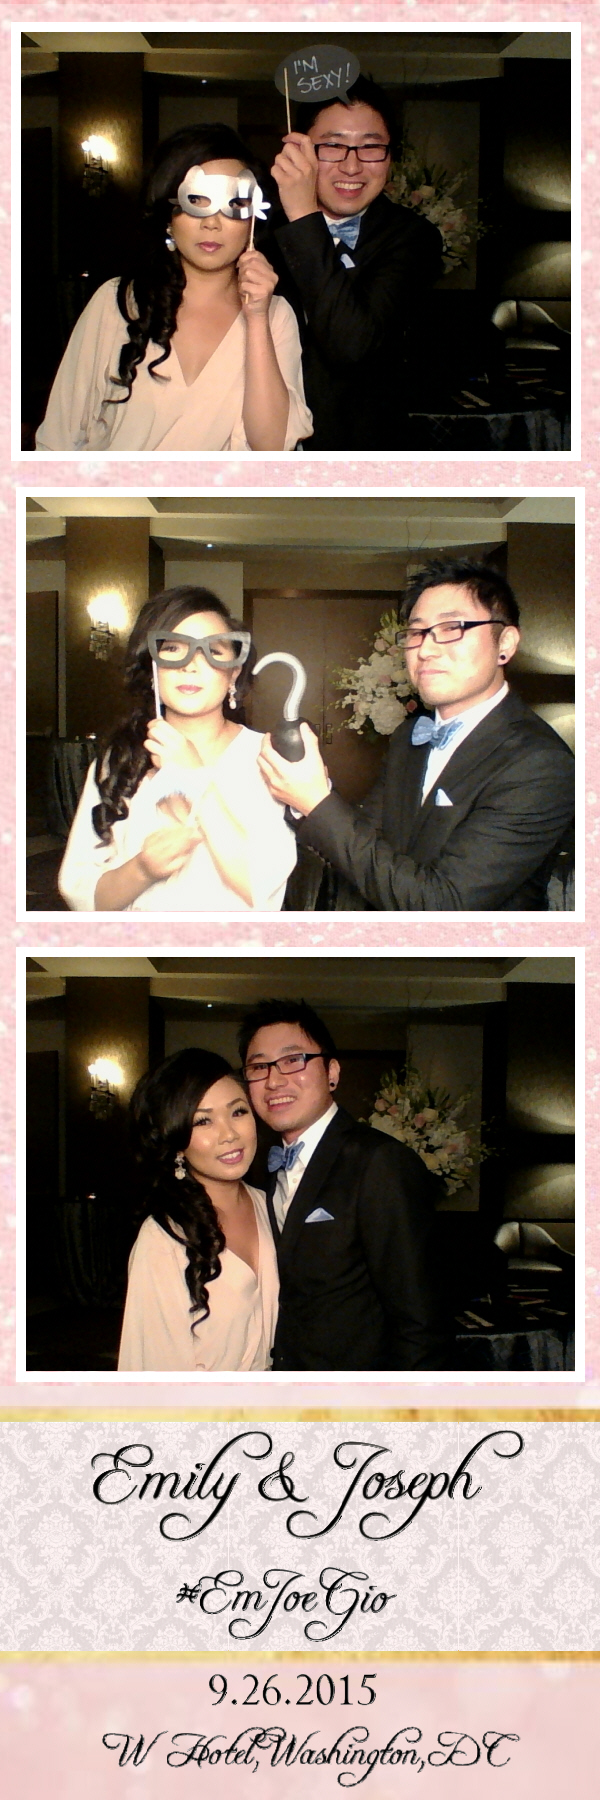 Guest House Events Photo Booth E&J (24).jpg